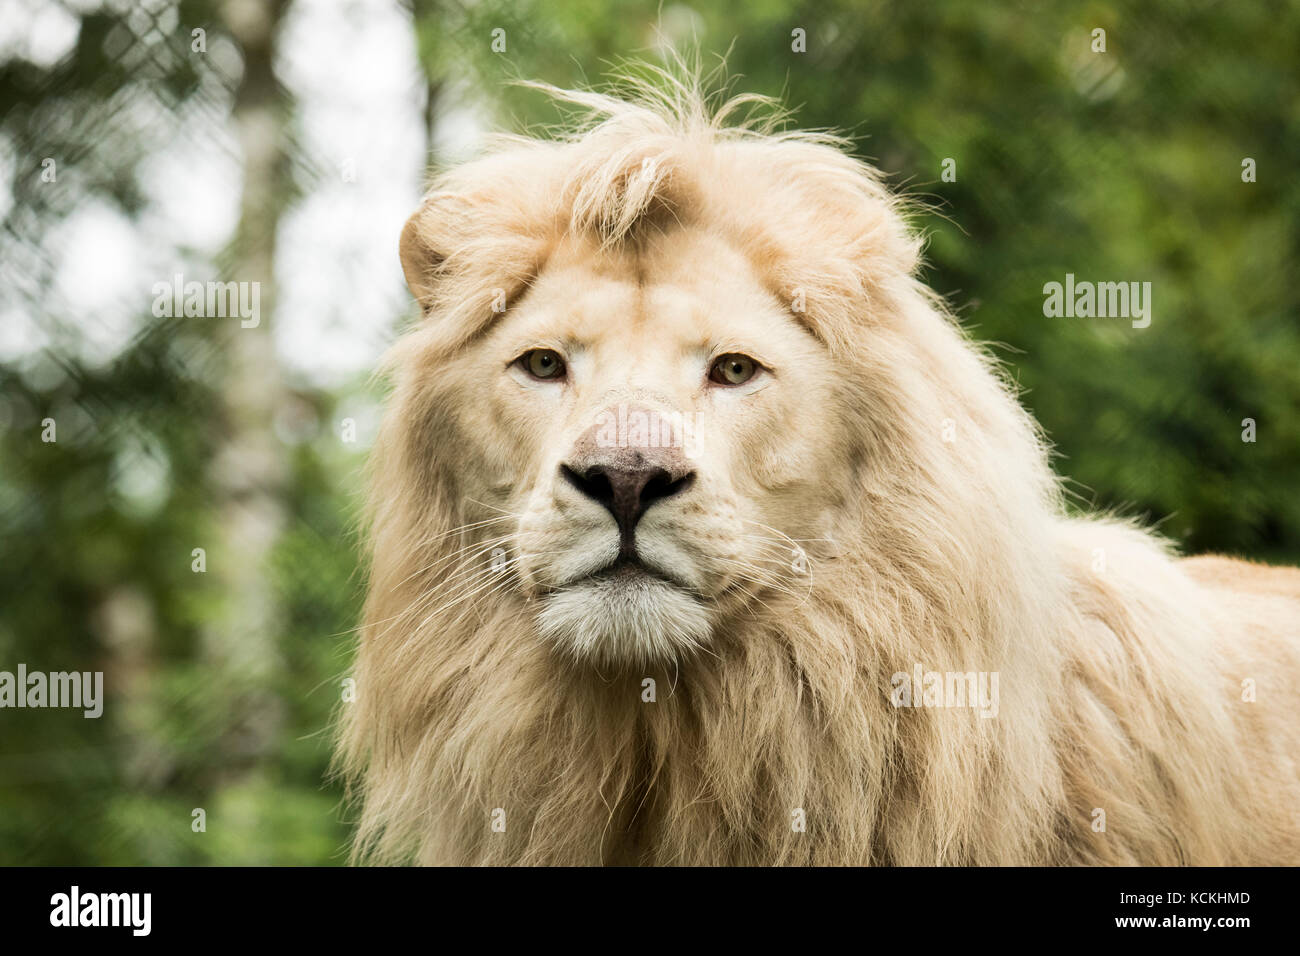 Headshot of a young white lion Stock Photo